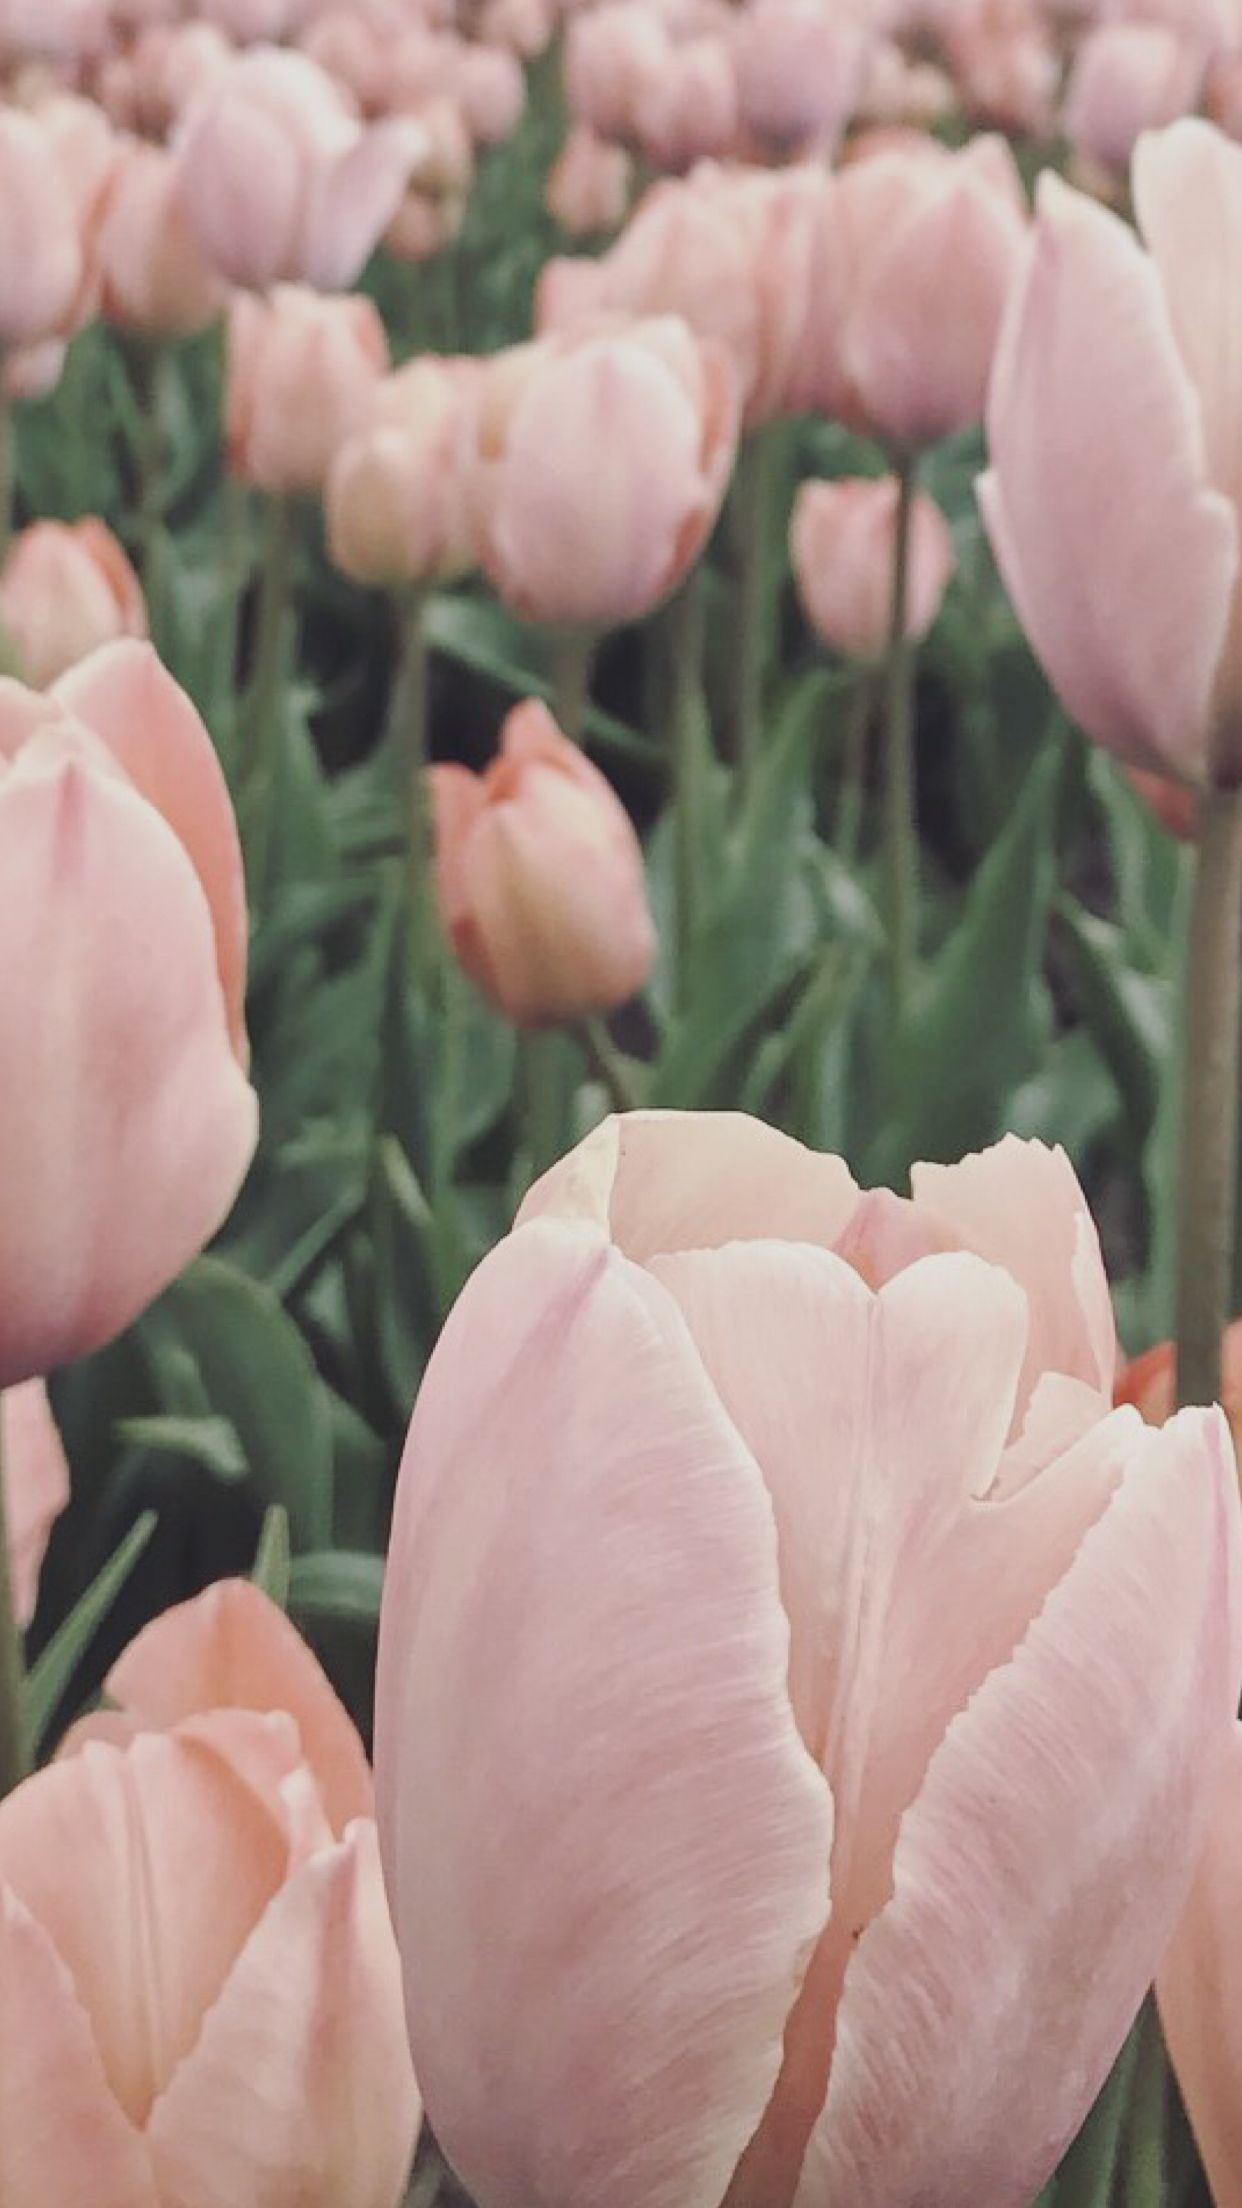 Tulips ★ iPhone wallpaper #springwallpaperiphone